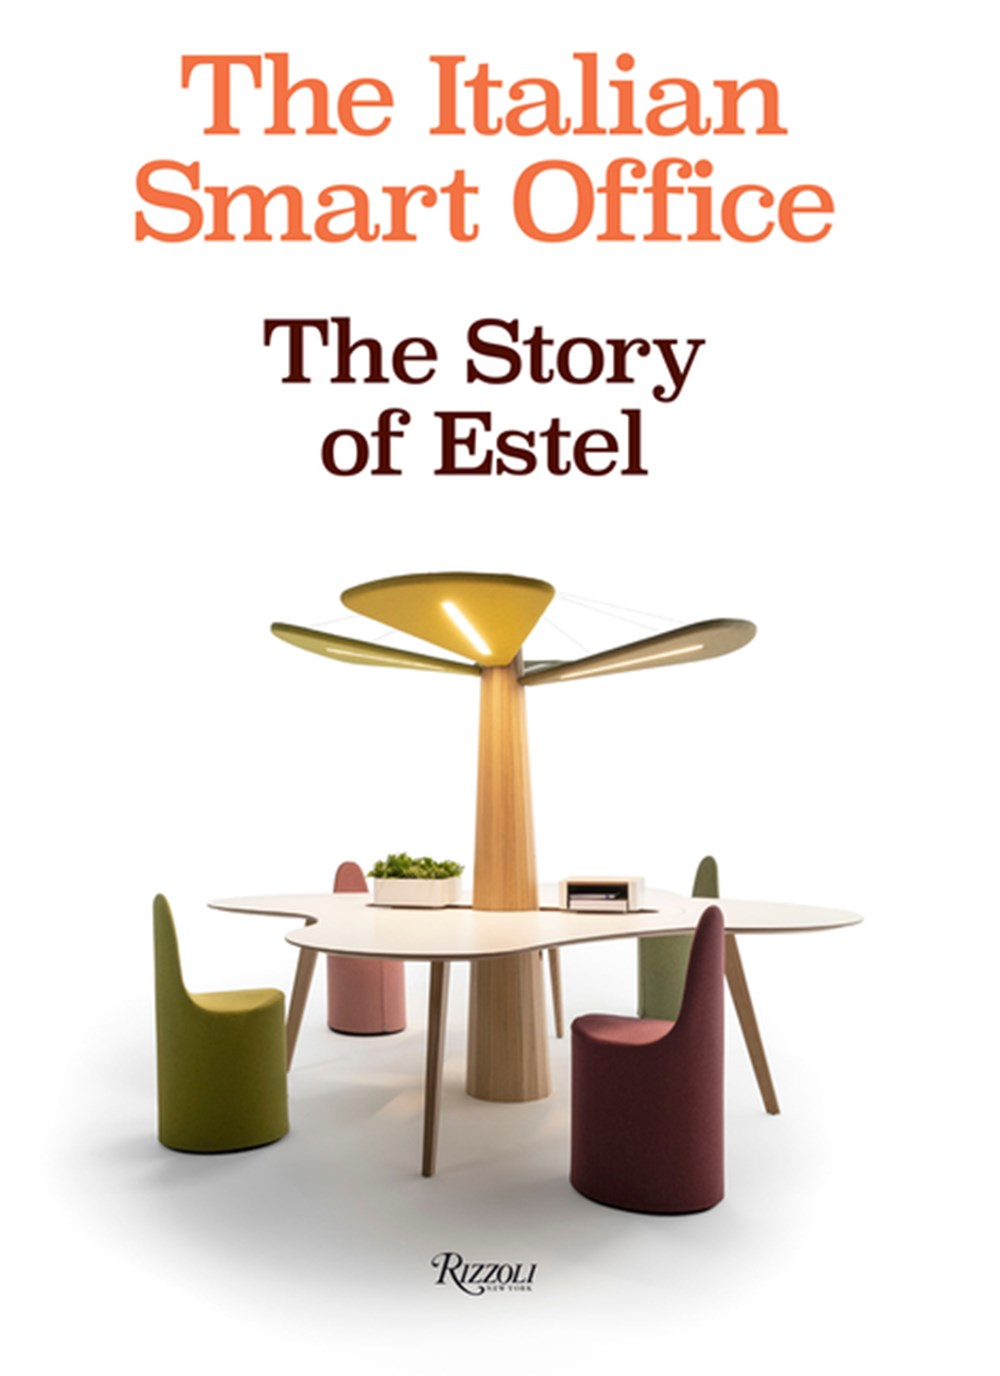 Italian Smart Office The Story of Estel